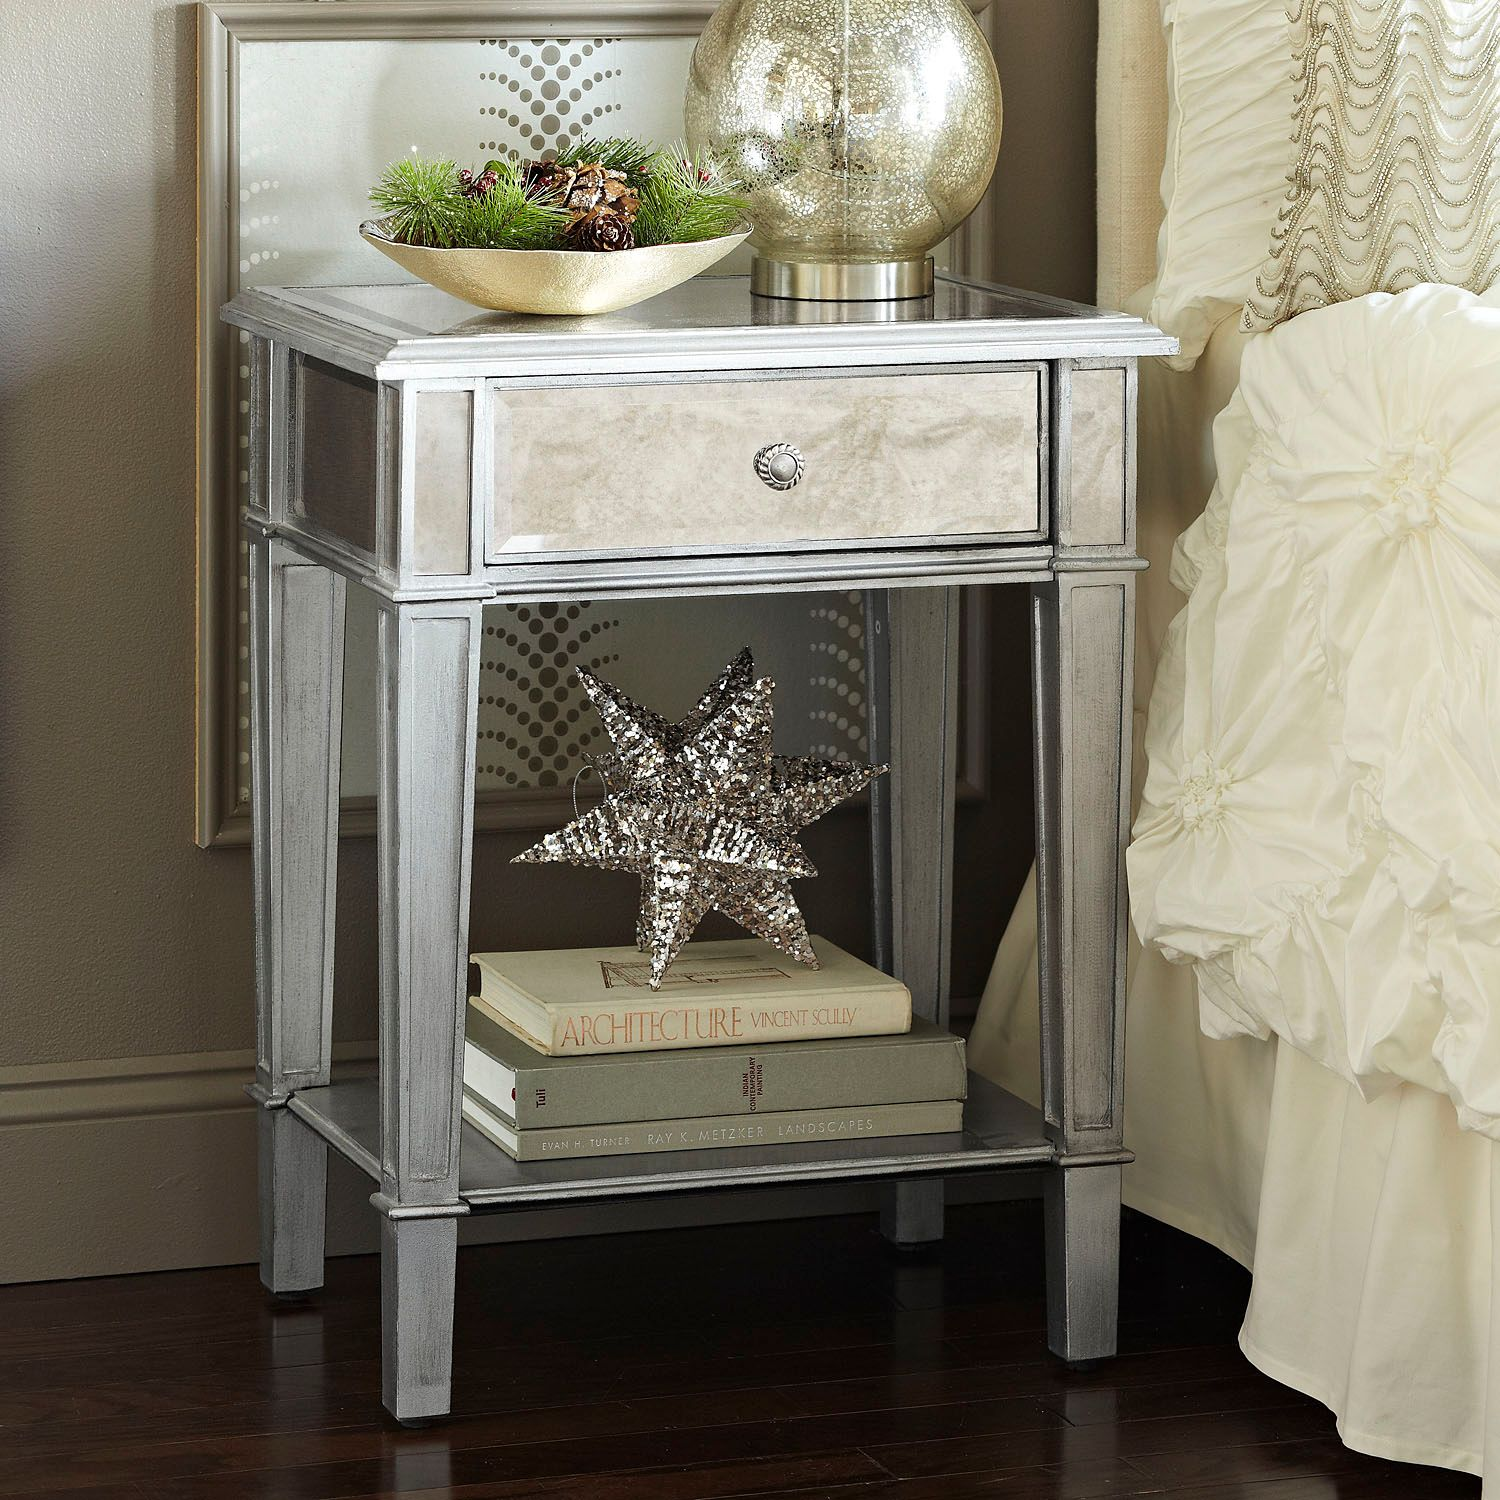 hayworth mirrored silver nightstand pier imports accent table collection lamp shades for floor lamps solid wood farm glass pedestal cool retro furniture dining set outdoor iron